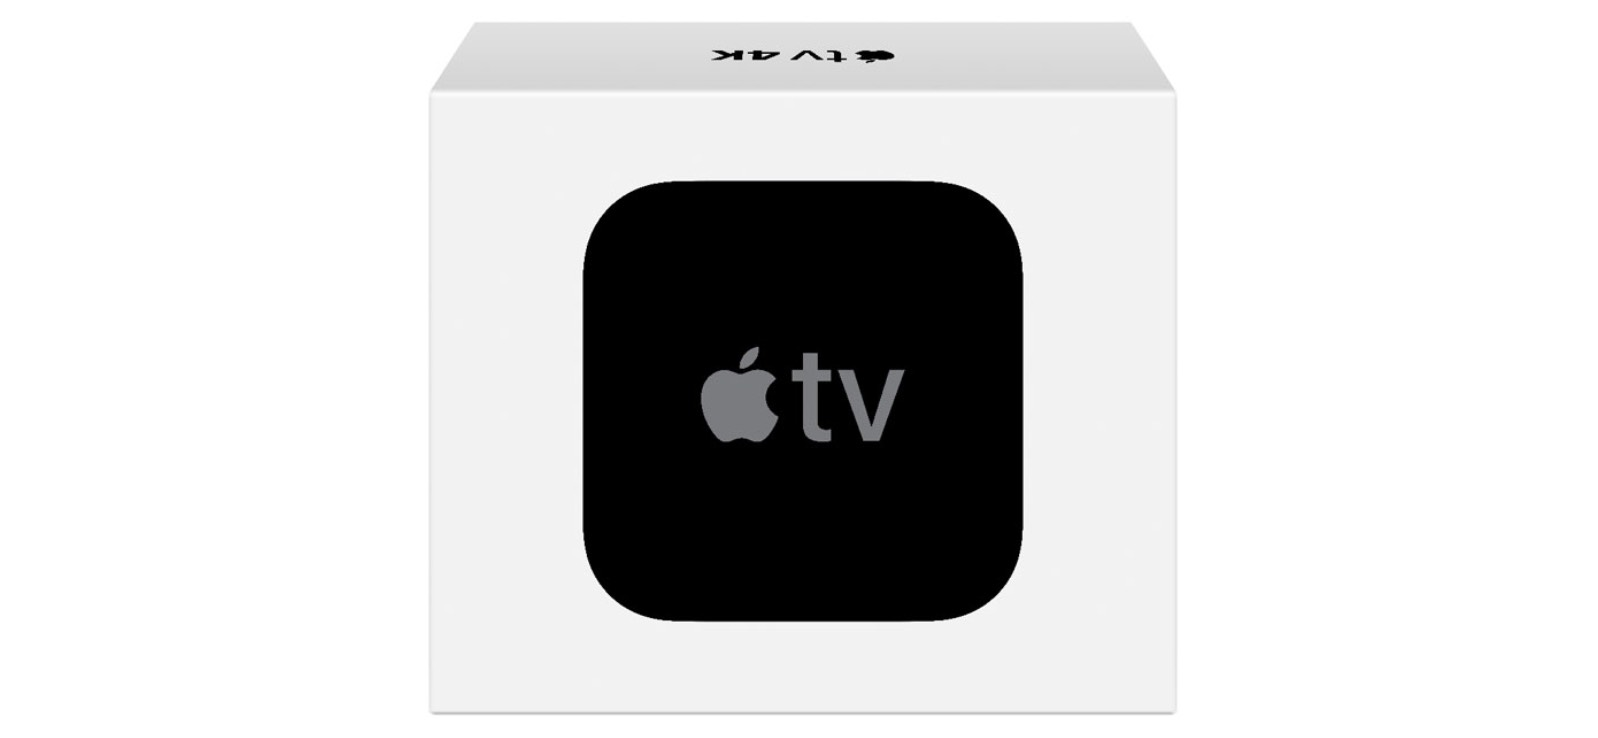 Apple TV 4K tech specs